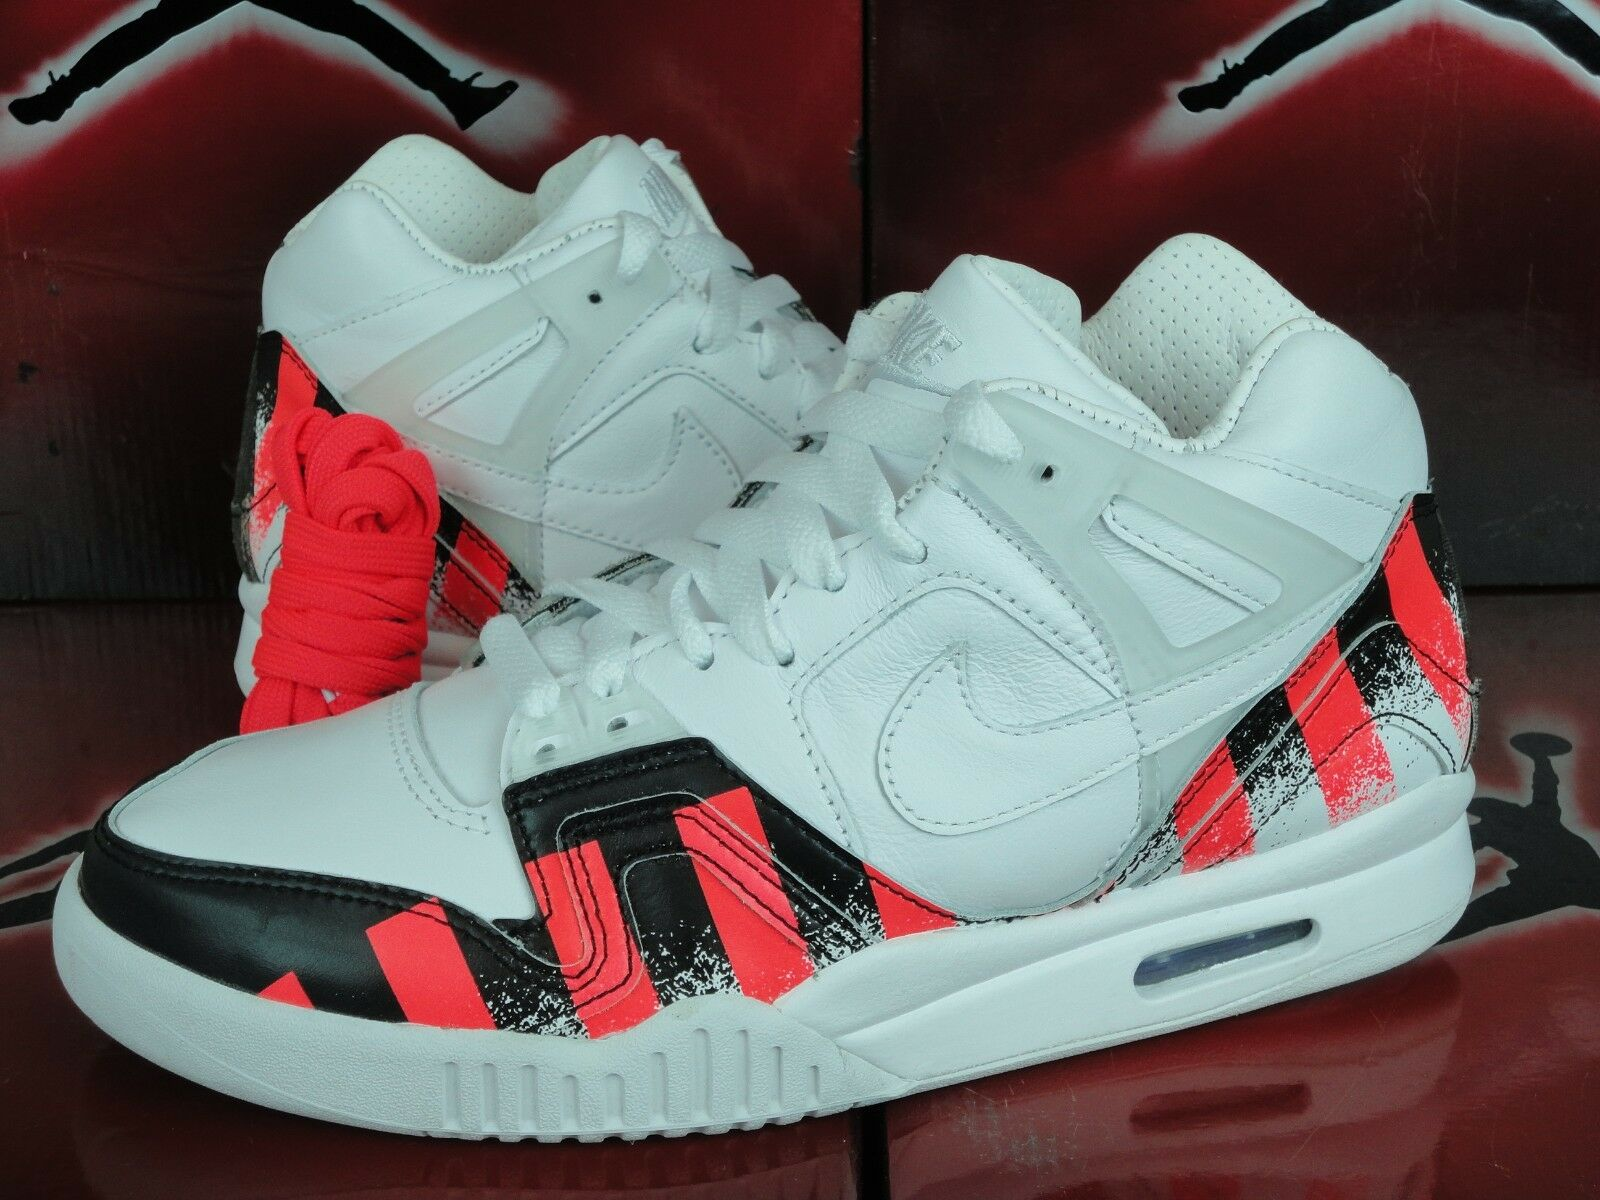 NEW NIKE AIR TECH CHALLENGE II SP FRENCH OPEN 621358-116 Sz 6.5 AGASSI US New shoes for men and women, limited time discount